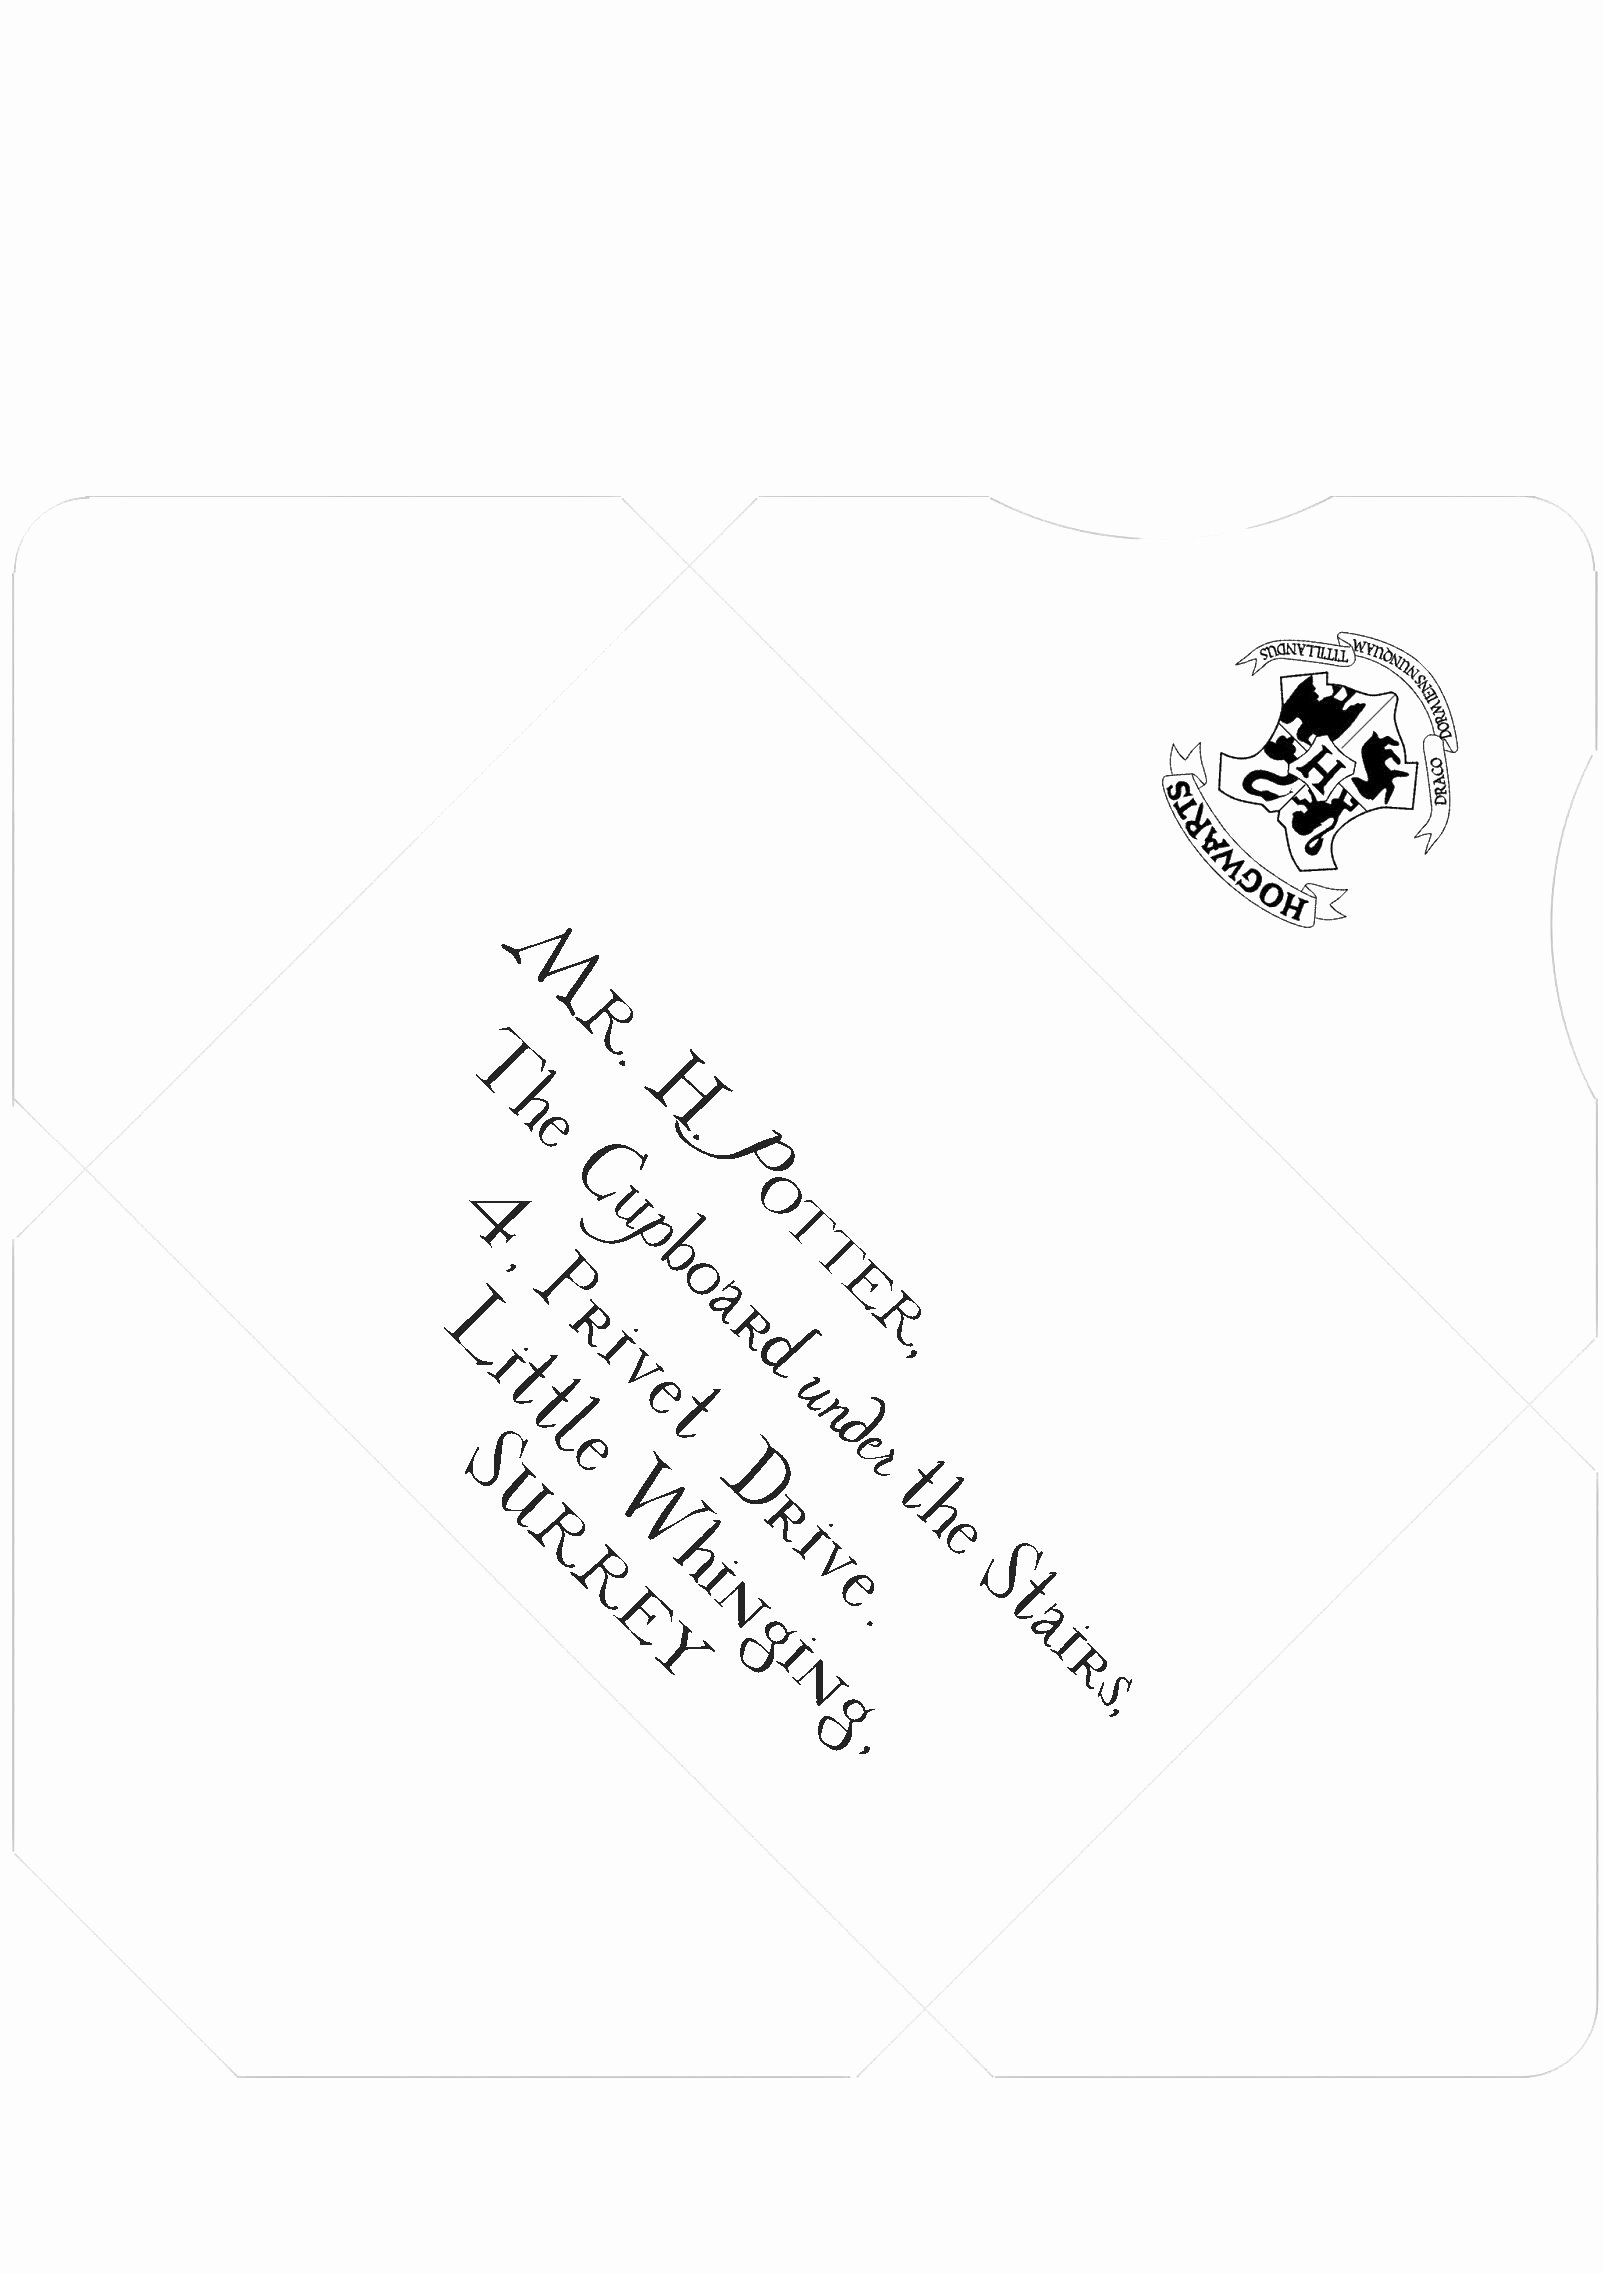 Hogwarts Envelope Printable Elegant Harry Potter Inspired Addressed and Sealed Envelope